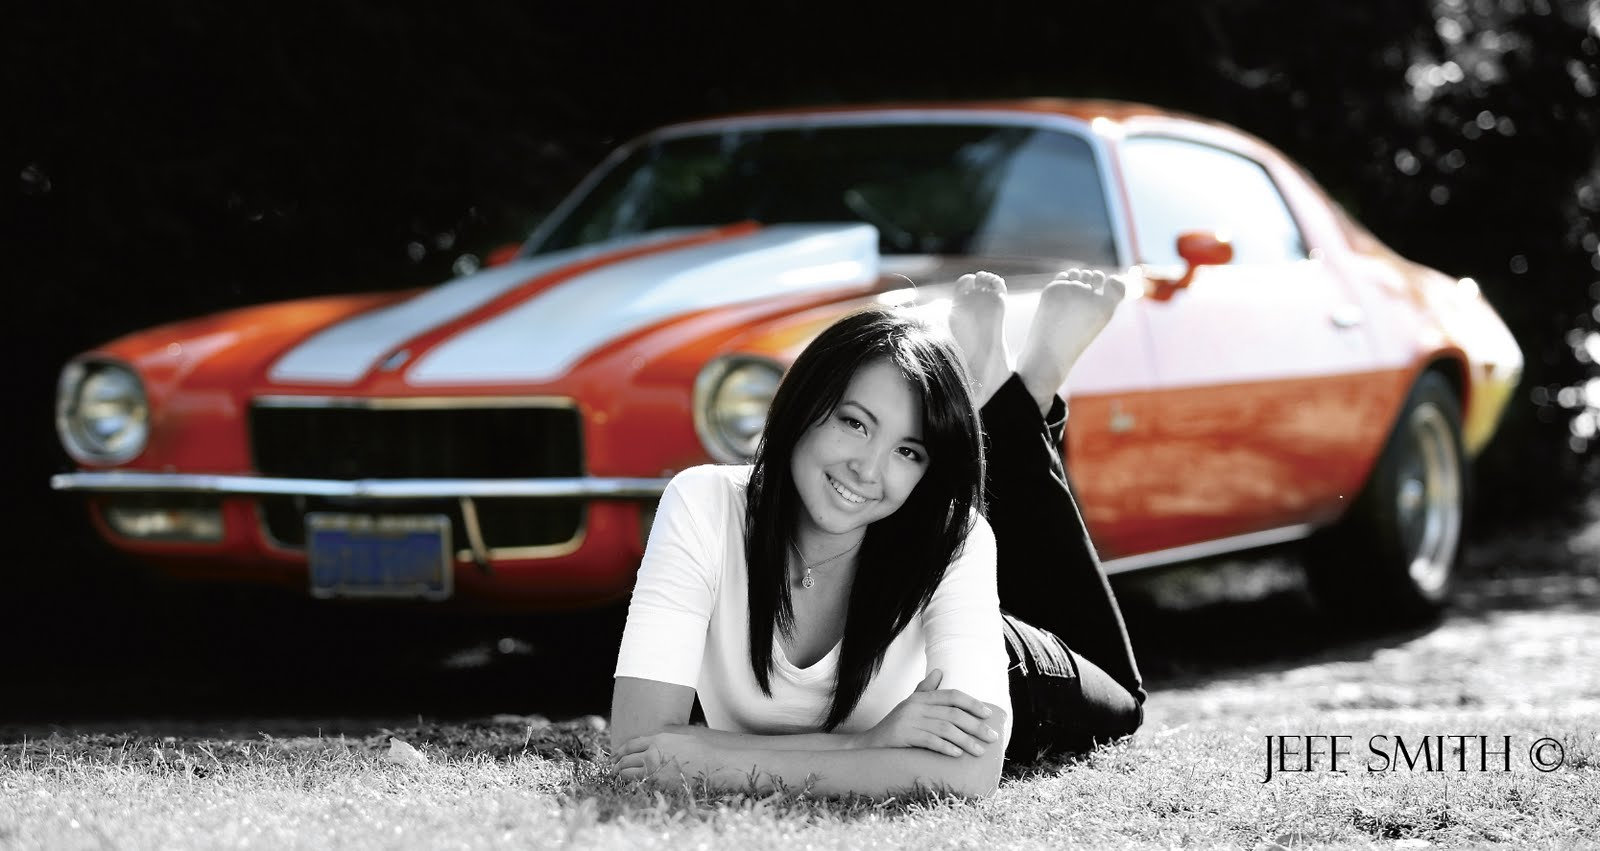 The Portrait Photographer Adding Props To Senior Portraits Jpg 1600x851 With Cars